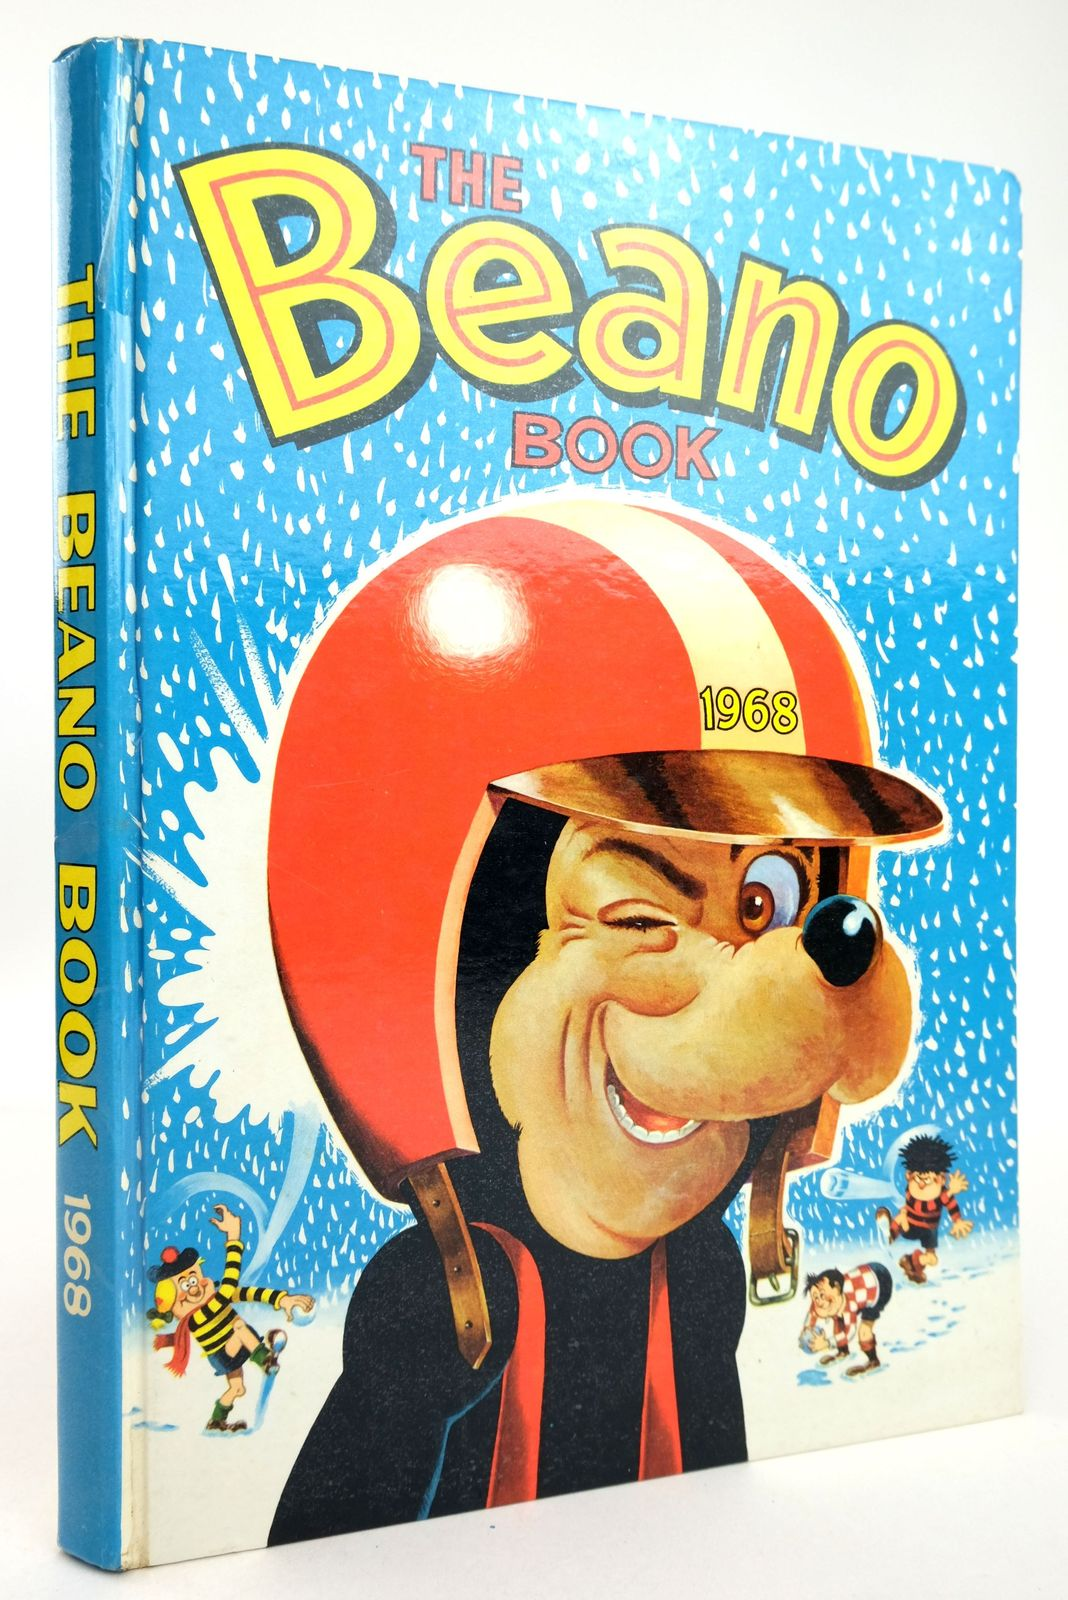 Photo of THE BEANO BOOK 1968 published by D.C. Thomson & Co Ltd. (STOCK CODE: 1819568)  for sale by Stella & Rose's Books